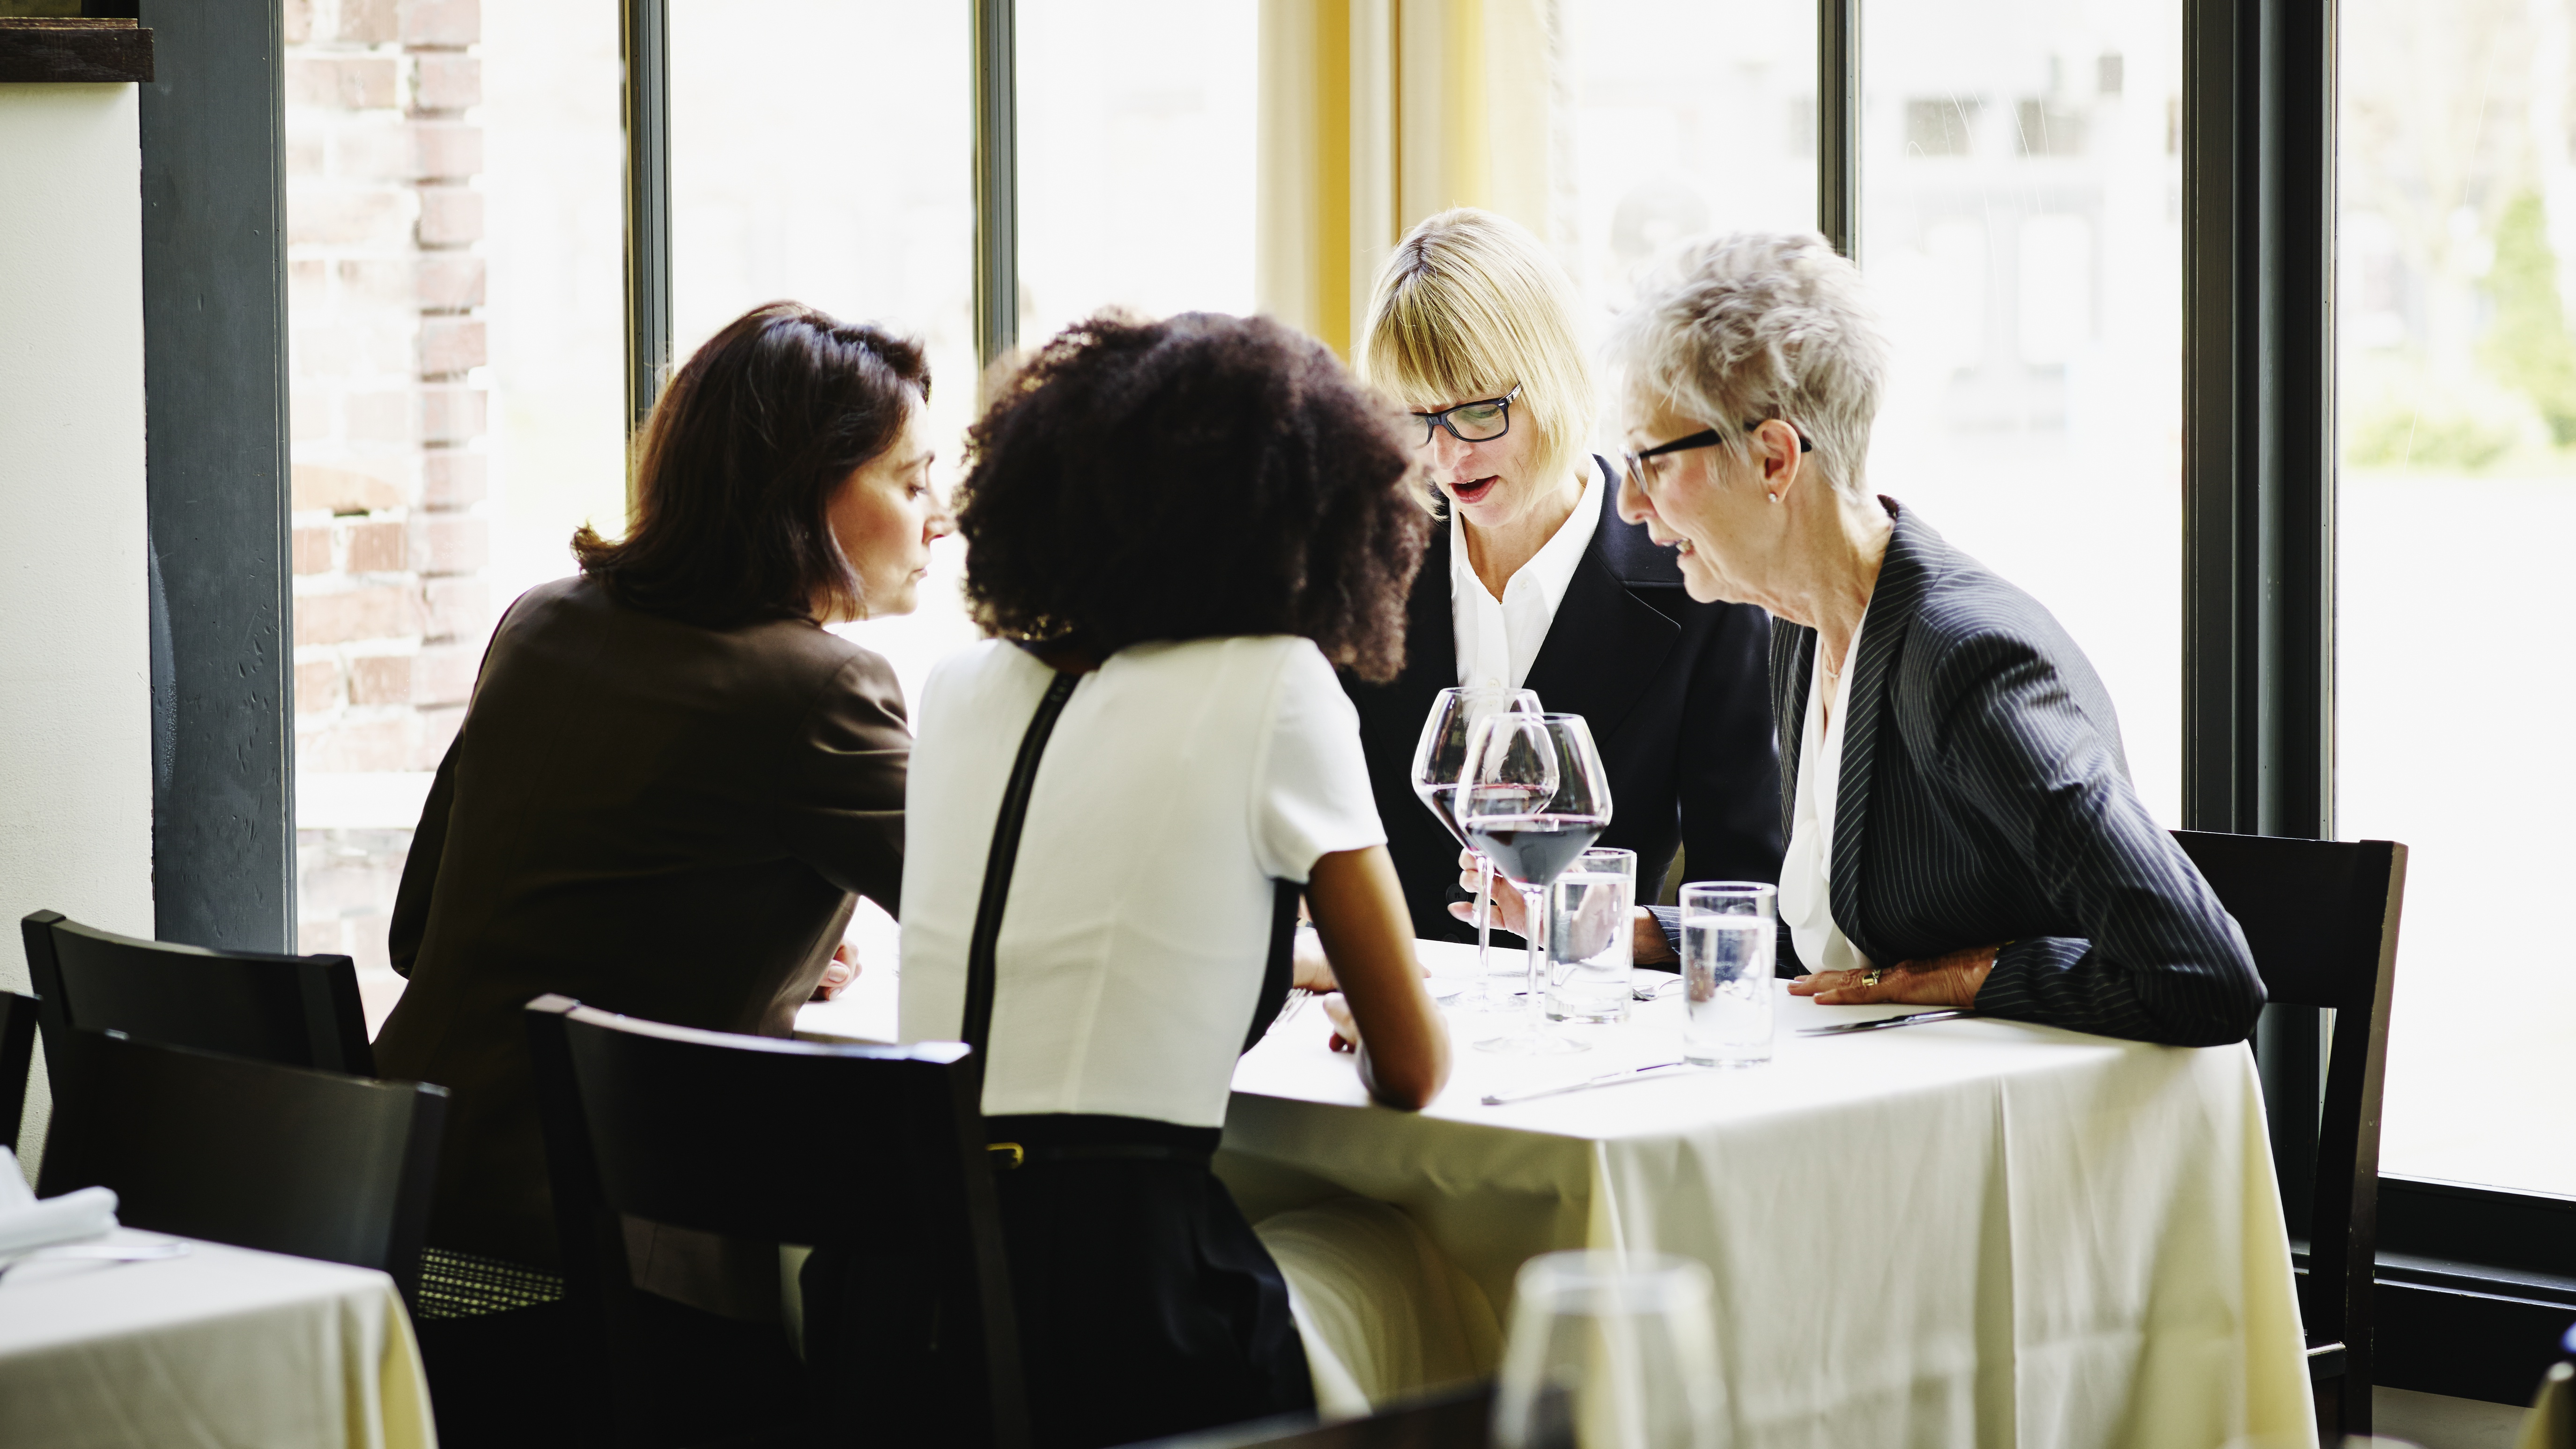 What Do Women Wear to a Business Dinner?